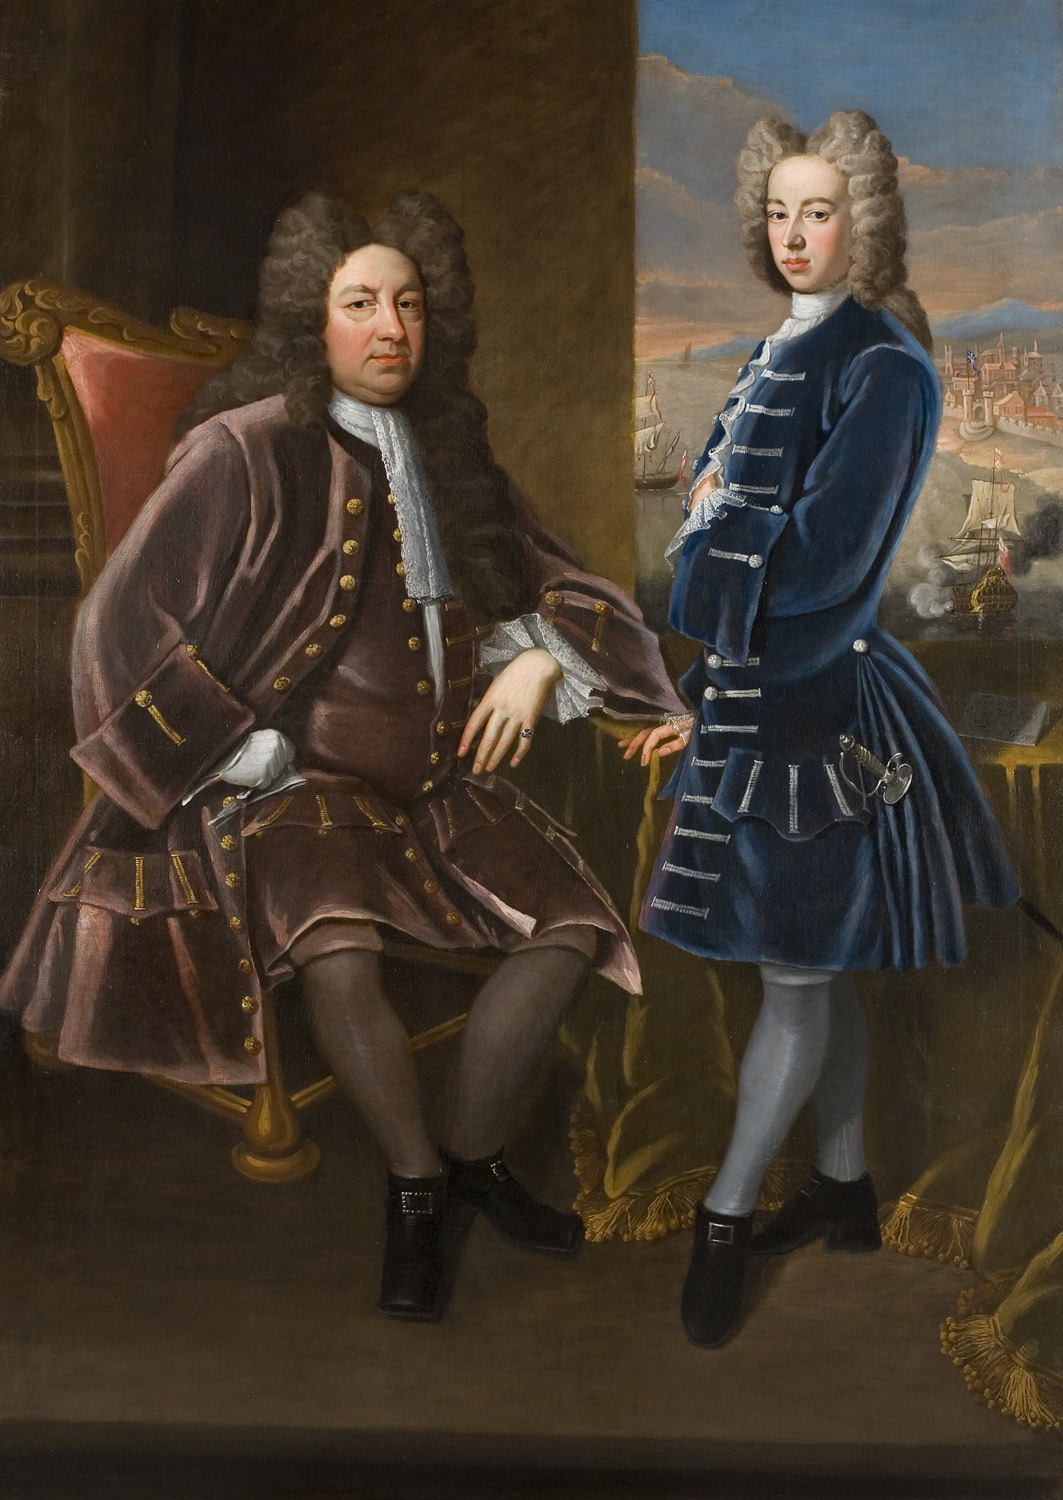 Attributed to James Worsdale, Elihu Yale with a Young man, 1714, oil on canvas, Elizabethan Club, Yale University